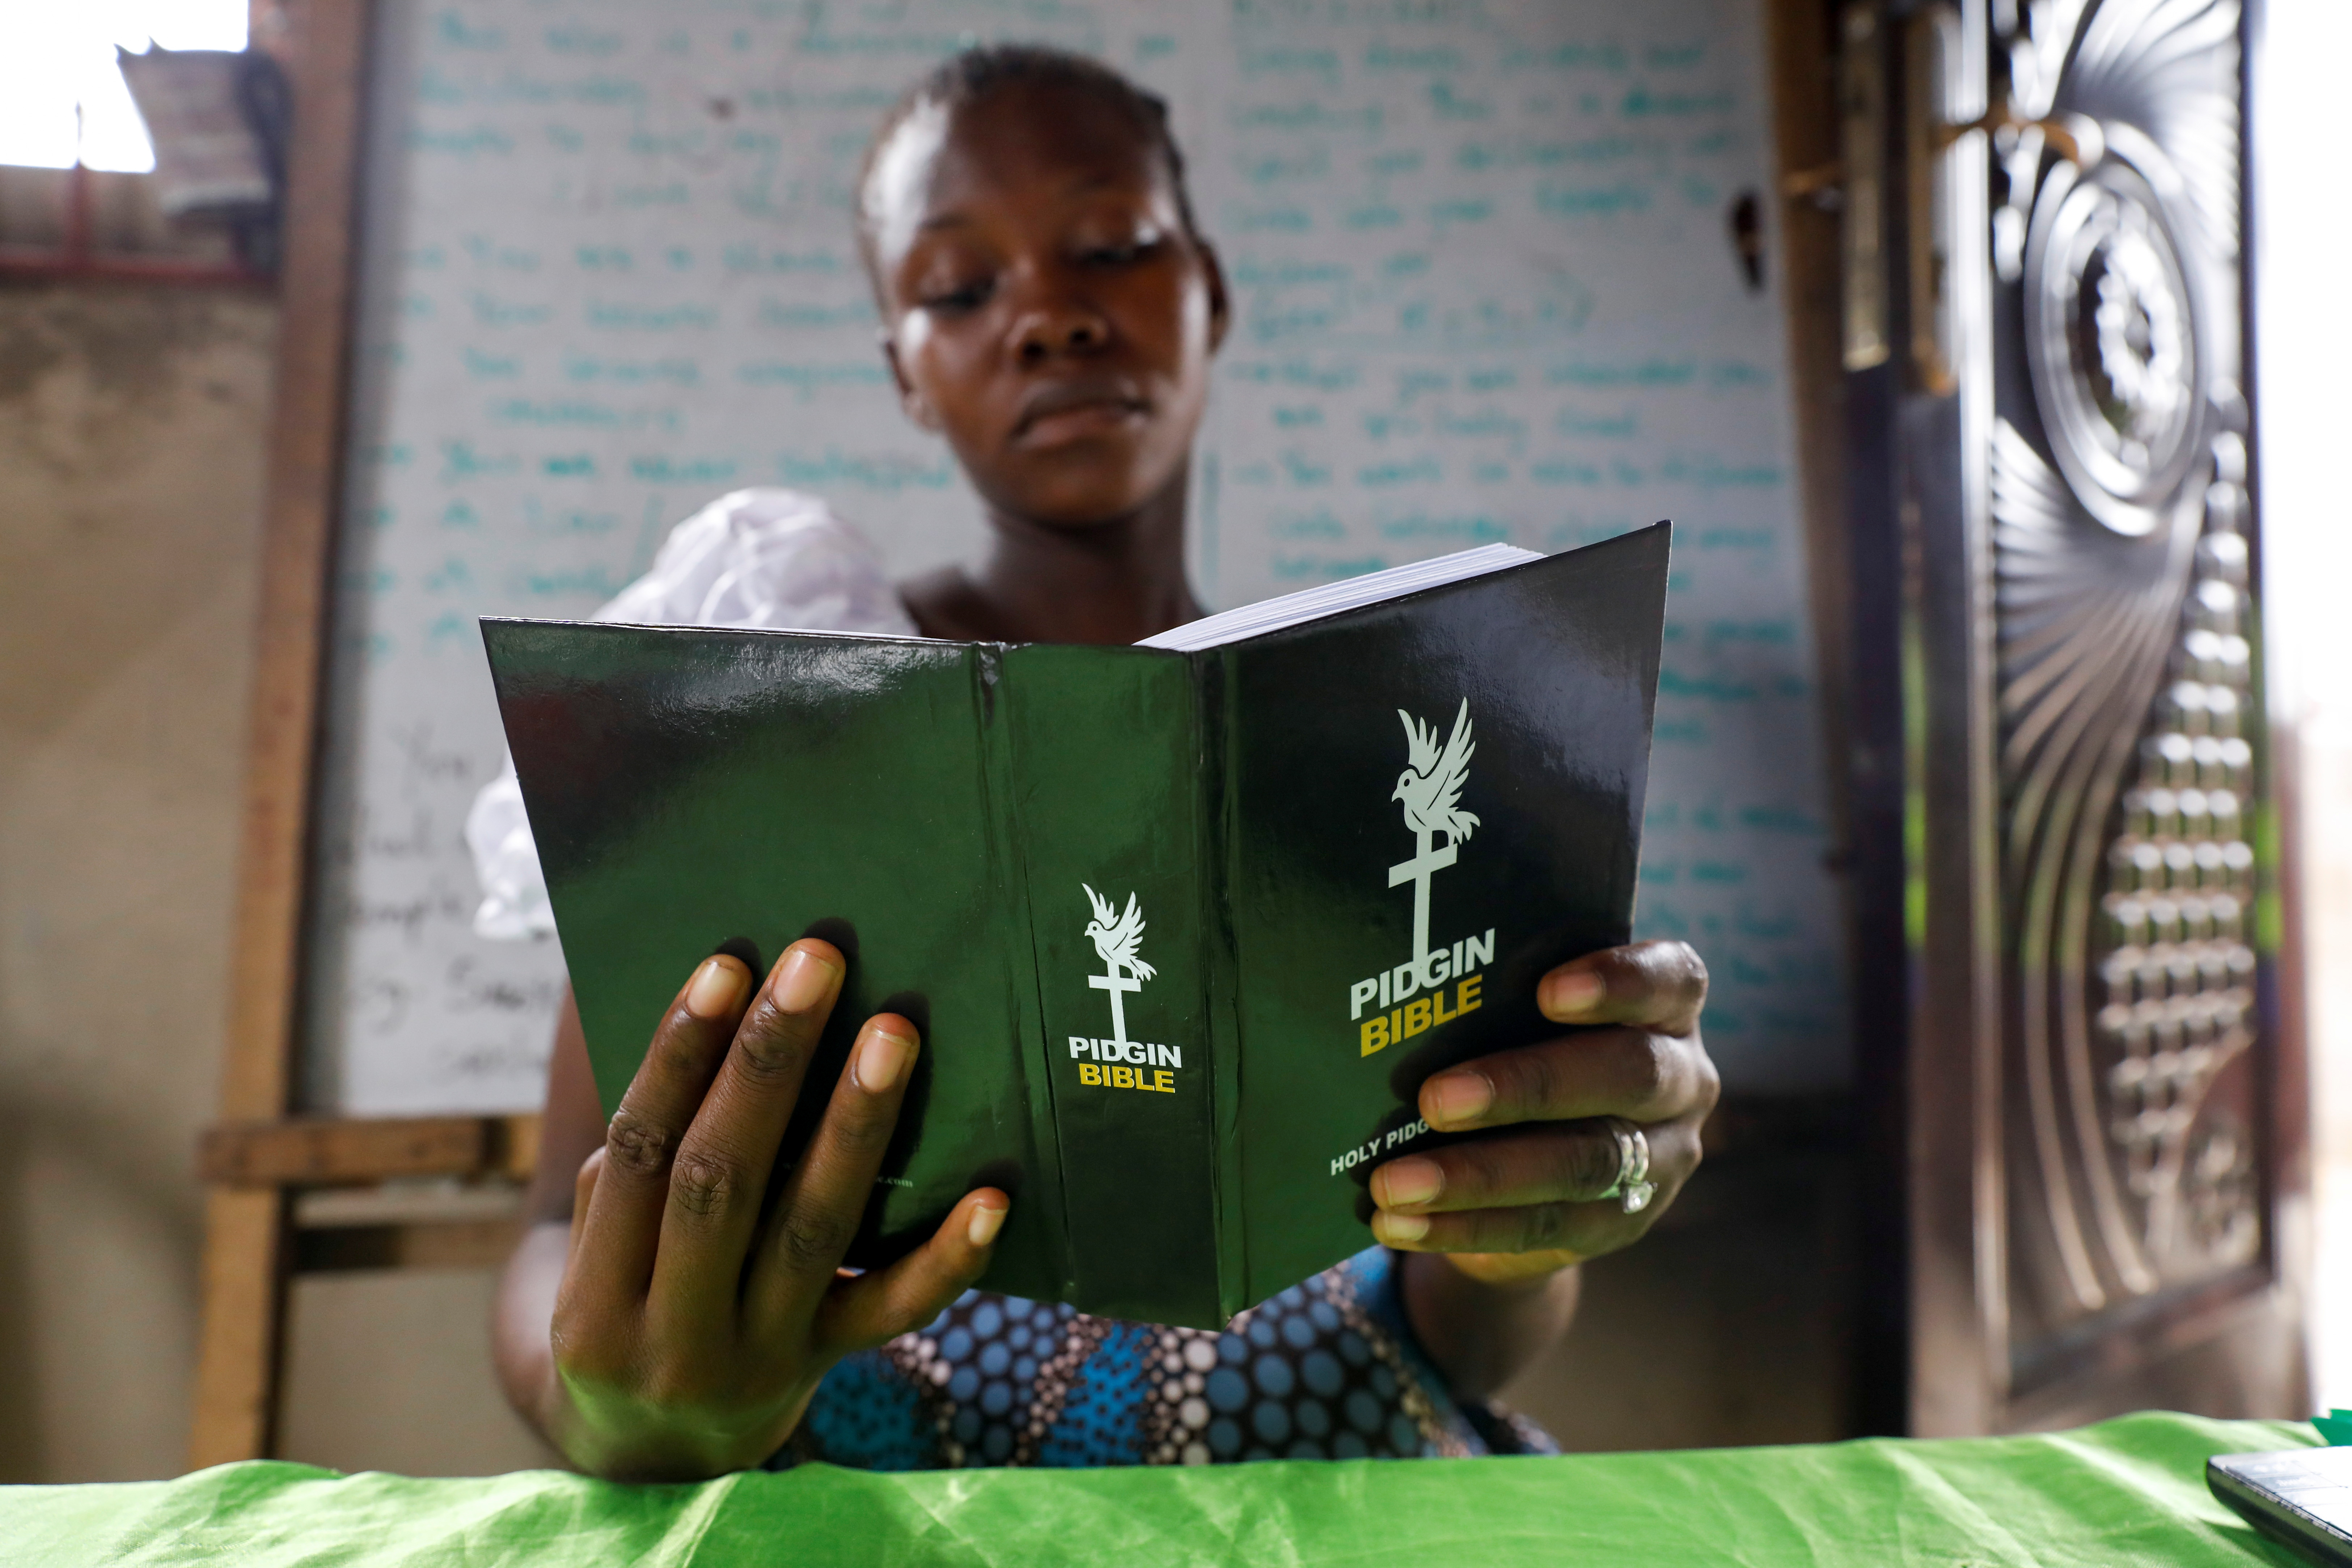 A congregation member reads the Pidgin Bible during a church service at the Heavenly Citizen's Church in Lagos, Nigeria June 27, 2021. REUTERS/Temilade Adelaja